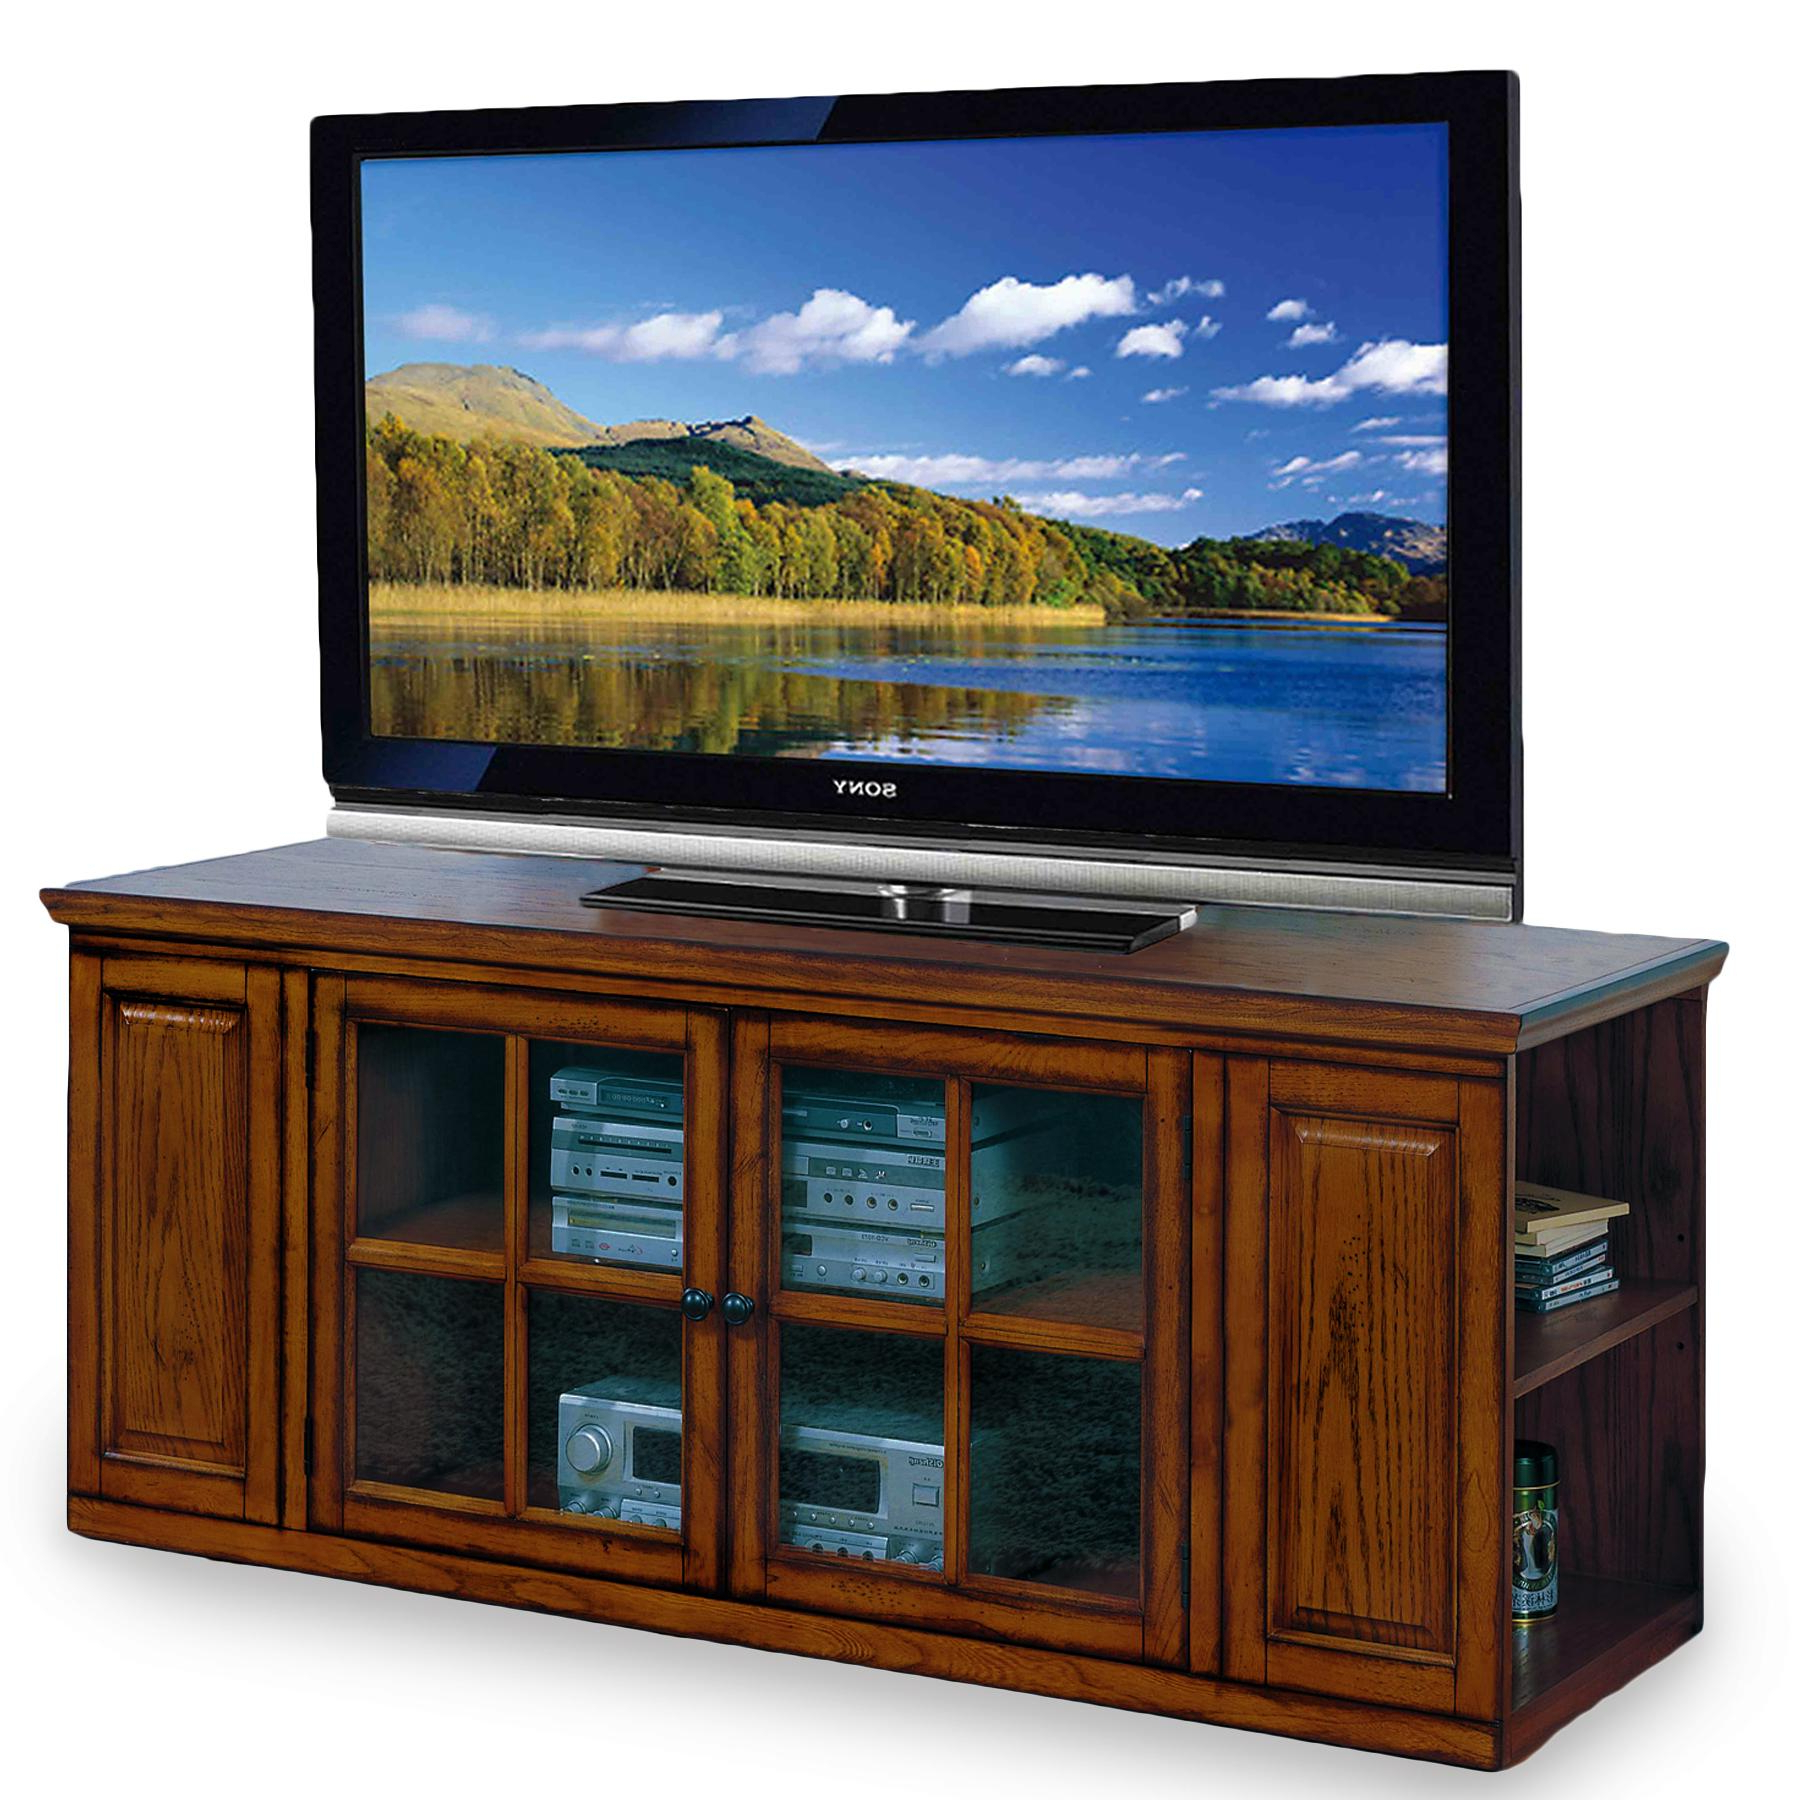 Latest Edwin Black 64 Inch Tv Stands Intended For Amazon: Leick Riley Holliday Tv Stand, 62 Inch, Burnished Oak (View 16 of 20)